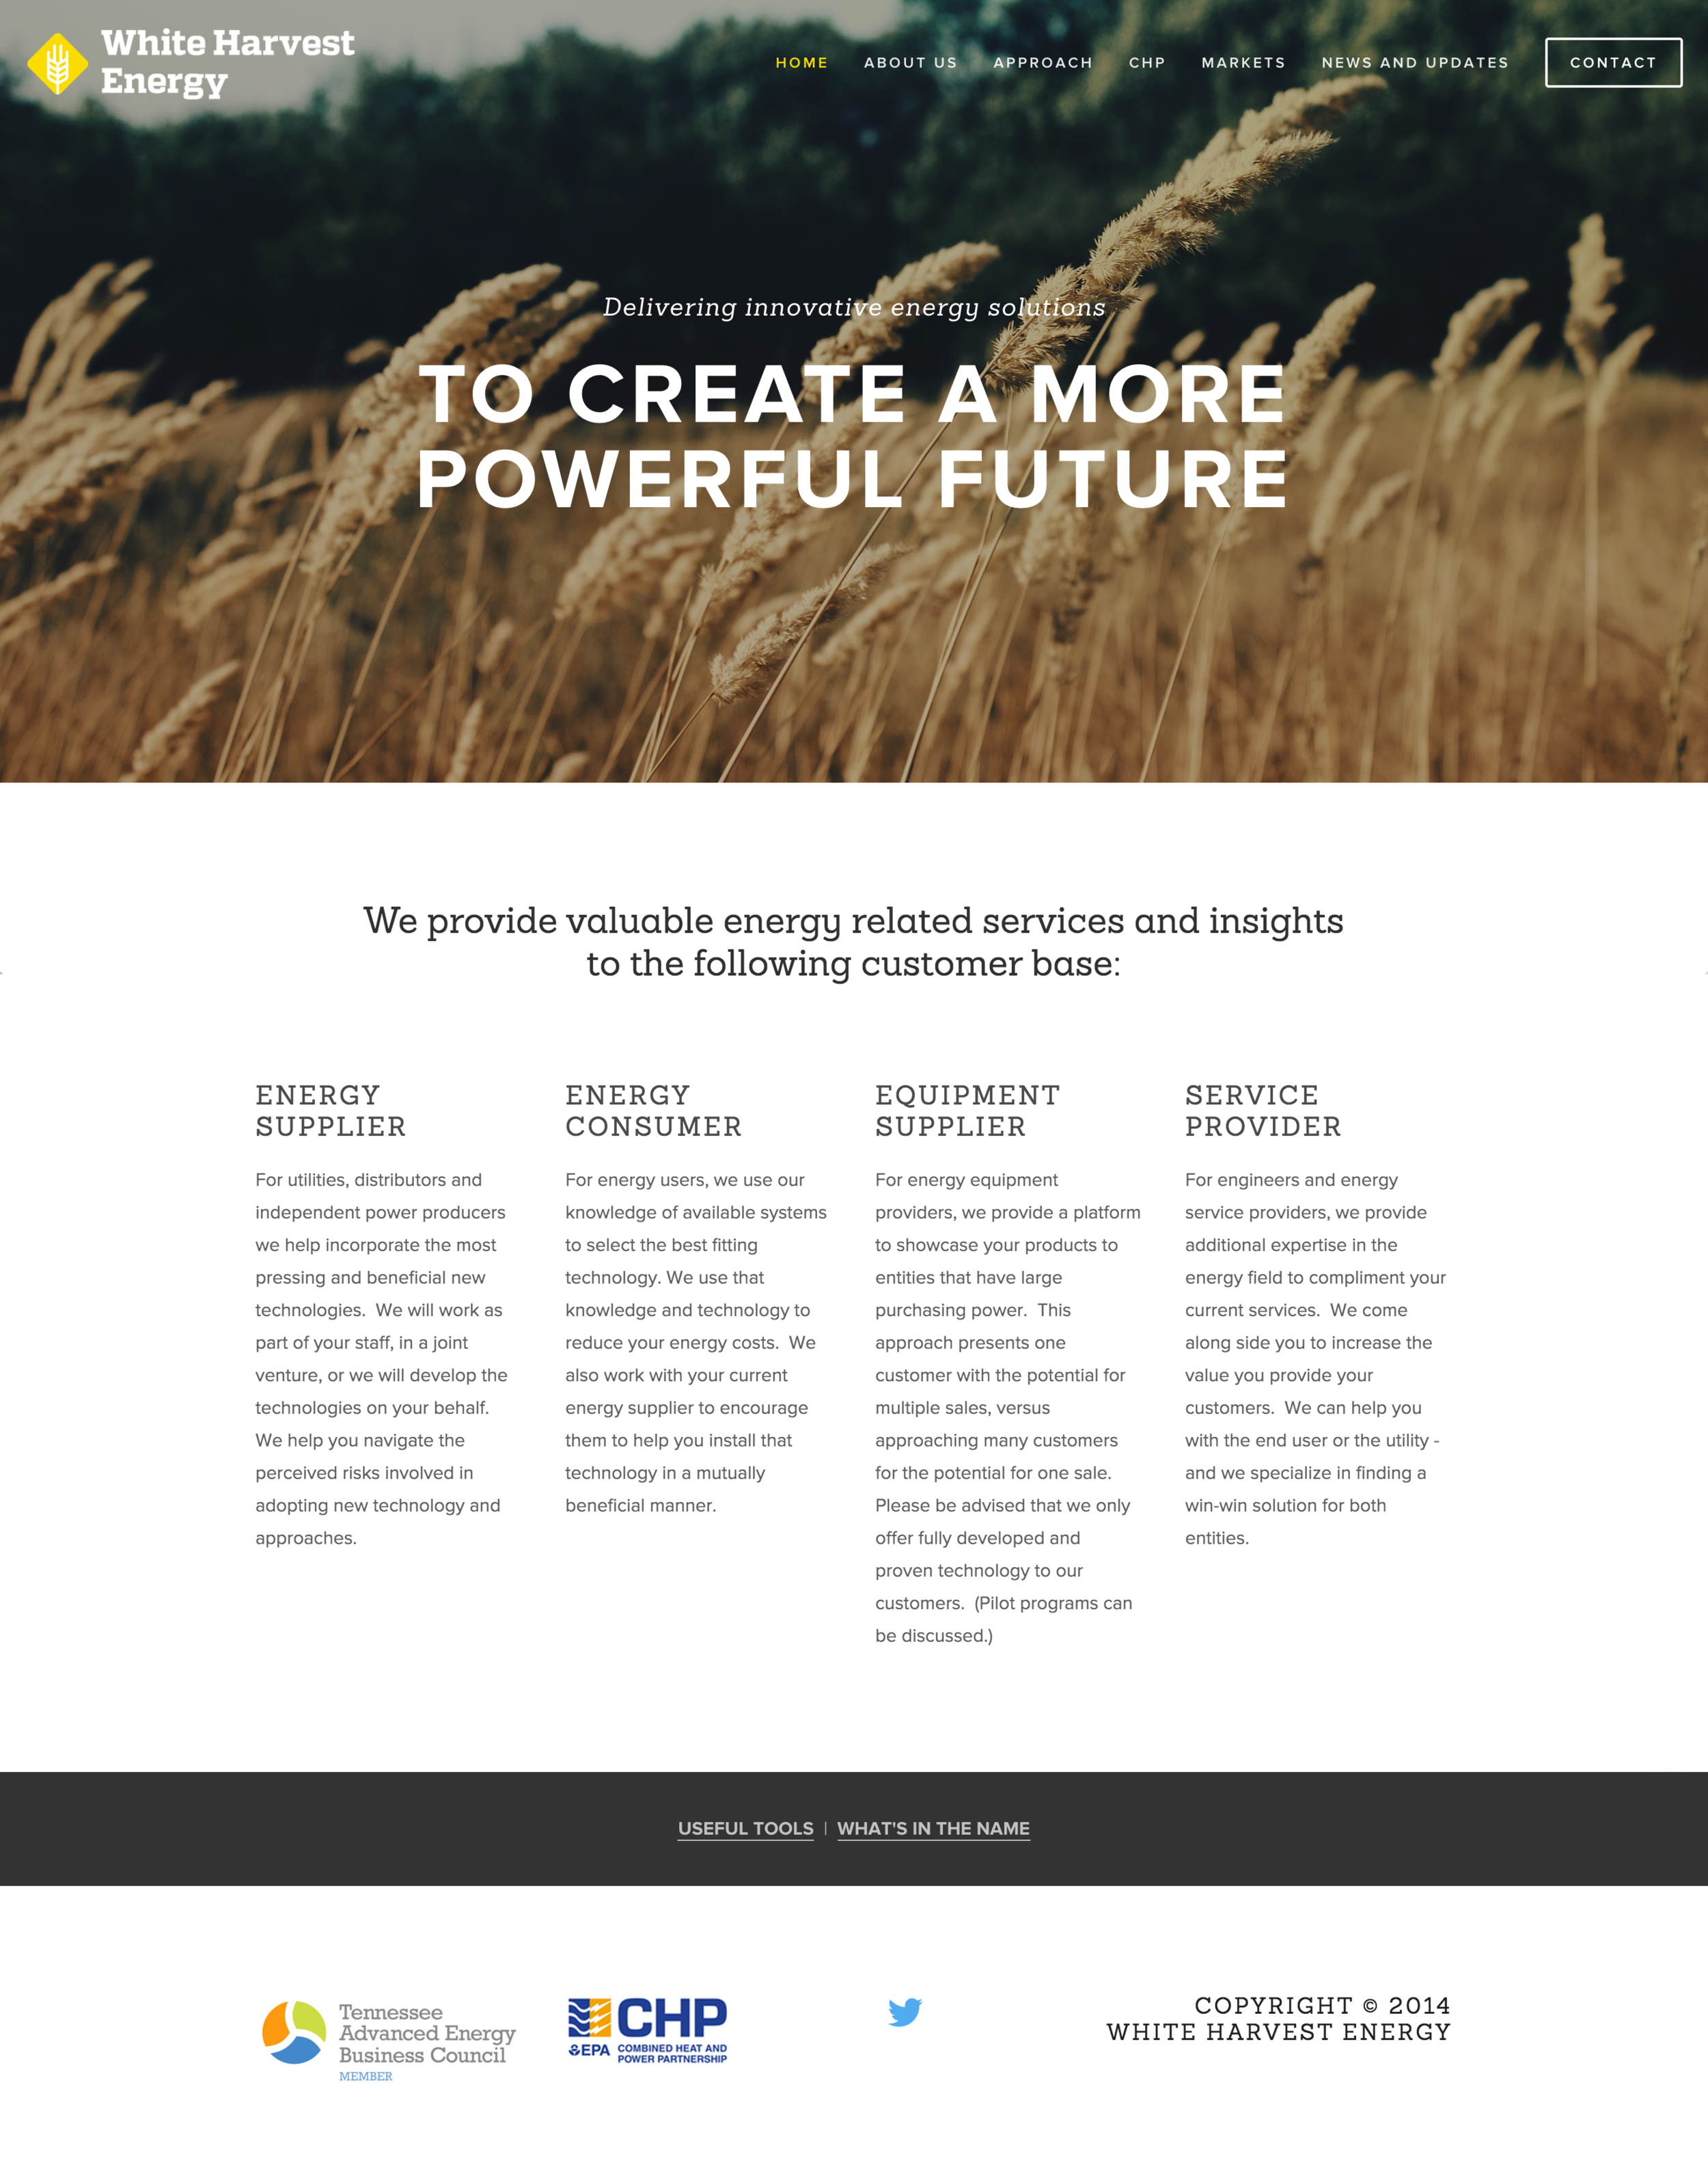 White Harvest Energy Website Home Page